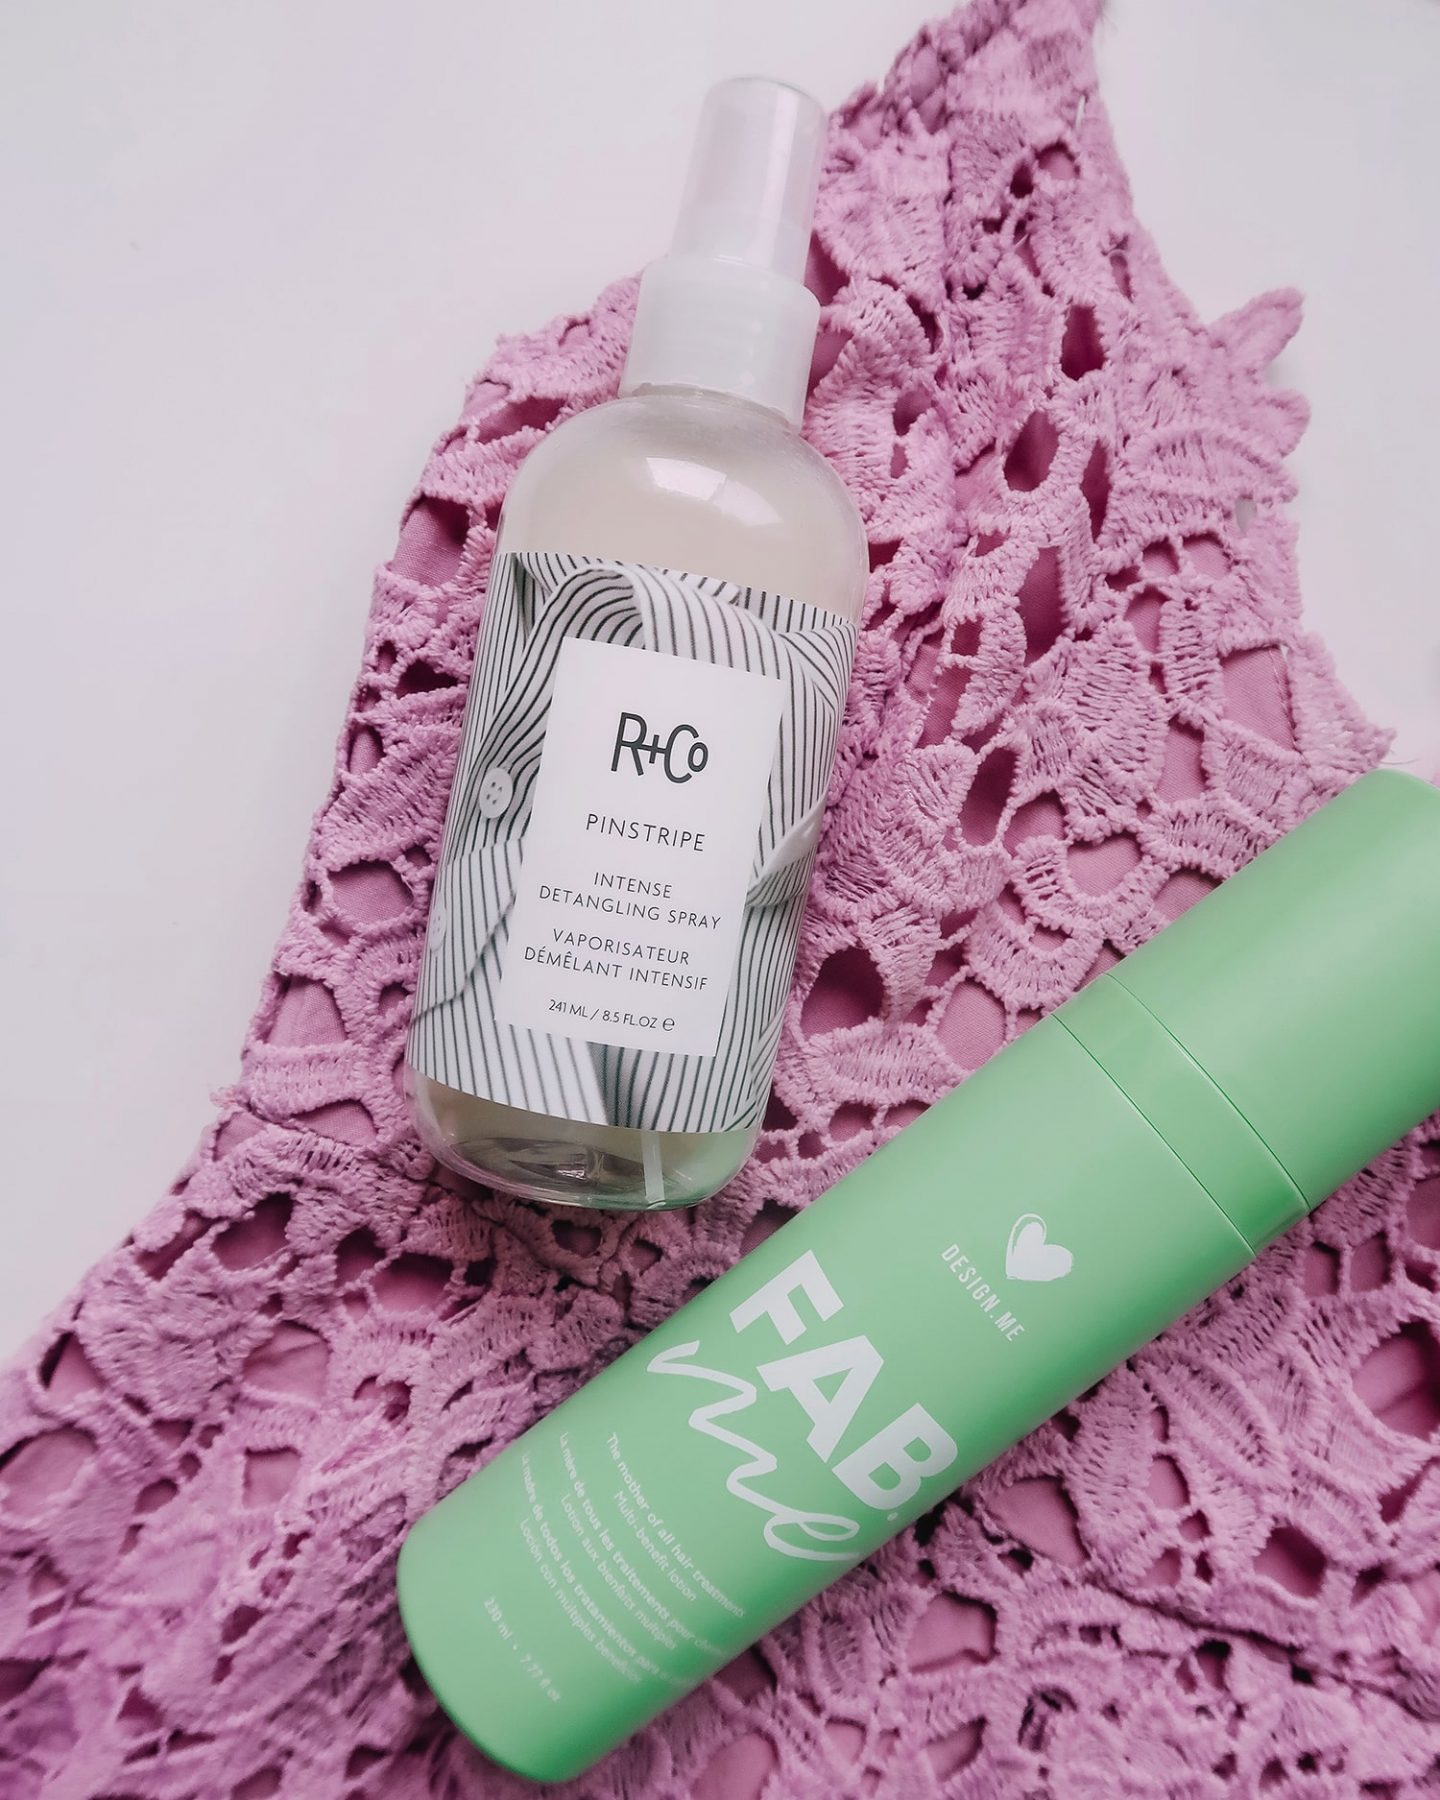 hair care r+co pinstripe detangle design.me fab.me